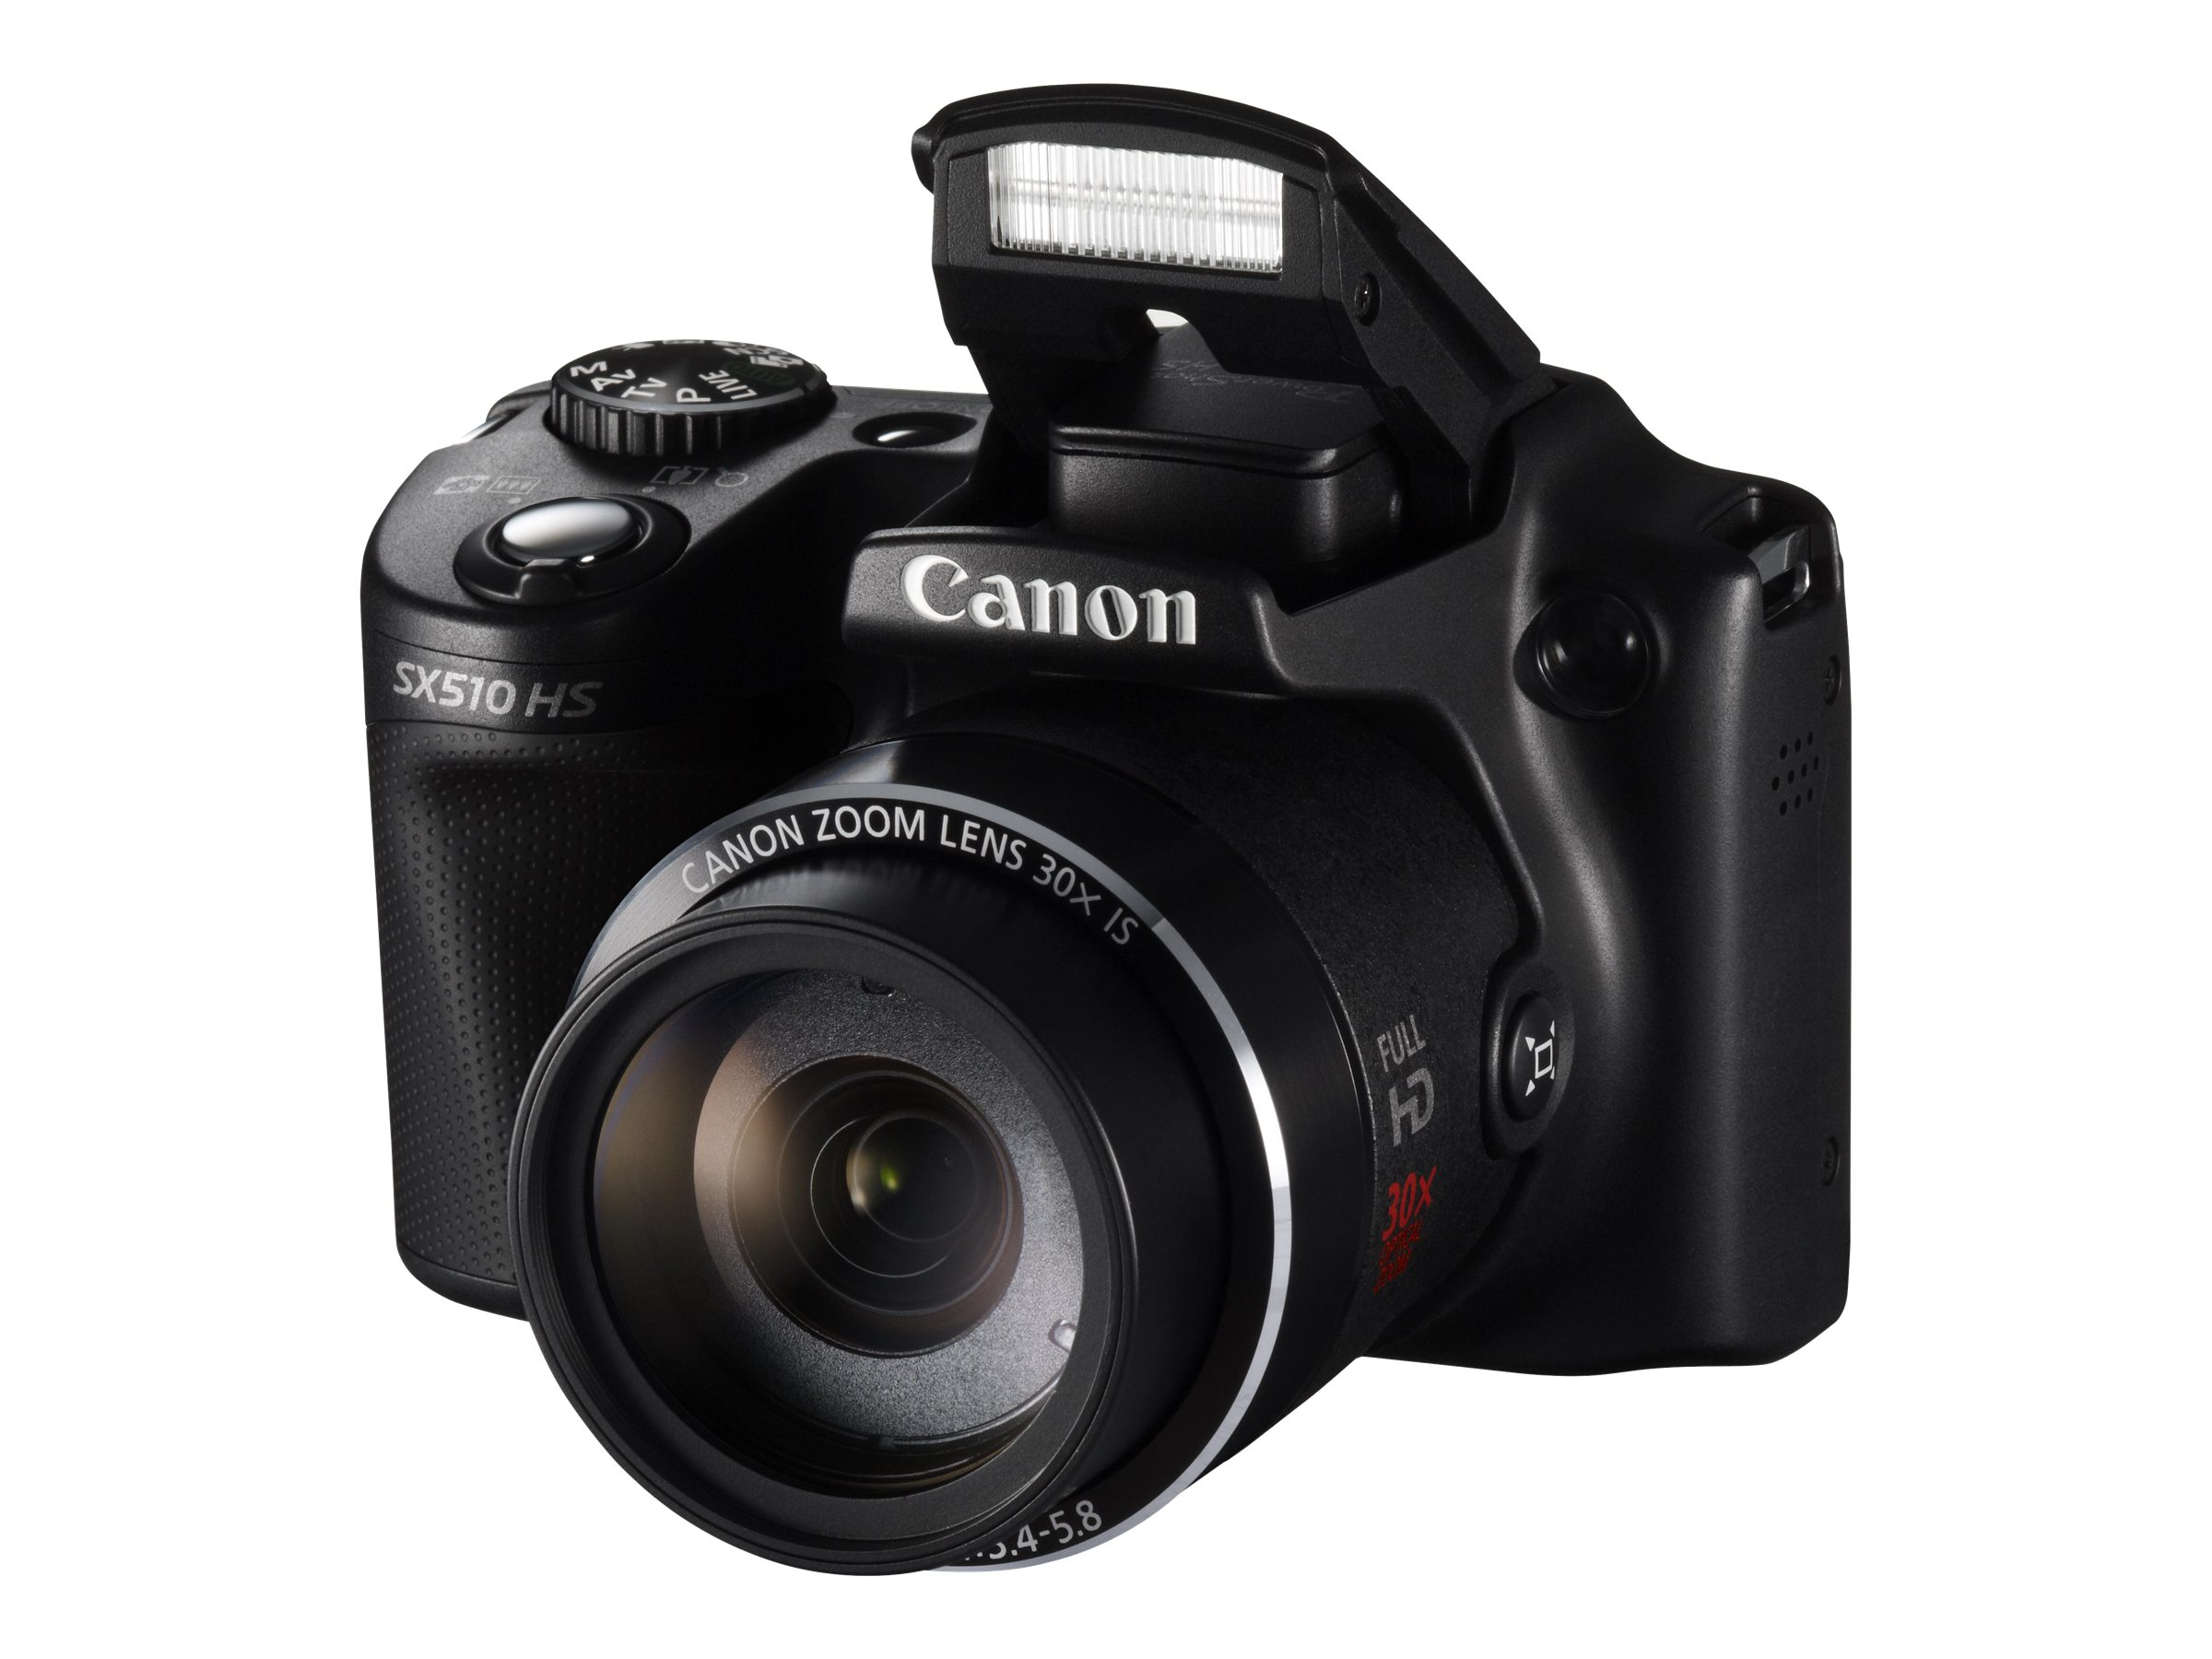 Canon 12.1 Megapixel SX510 PowerShot Digital Camera with WiFi